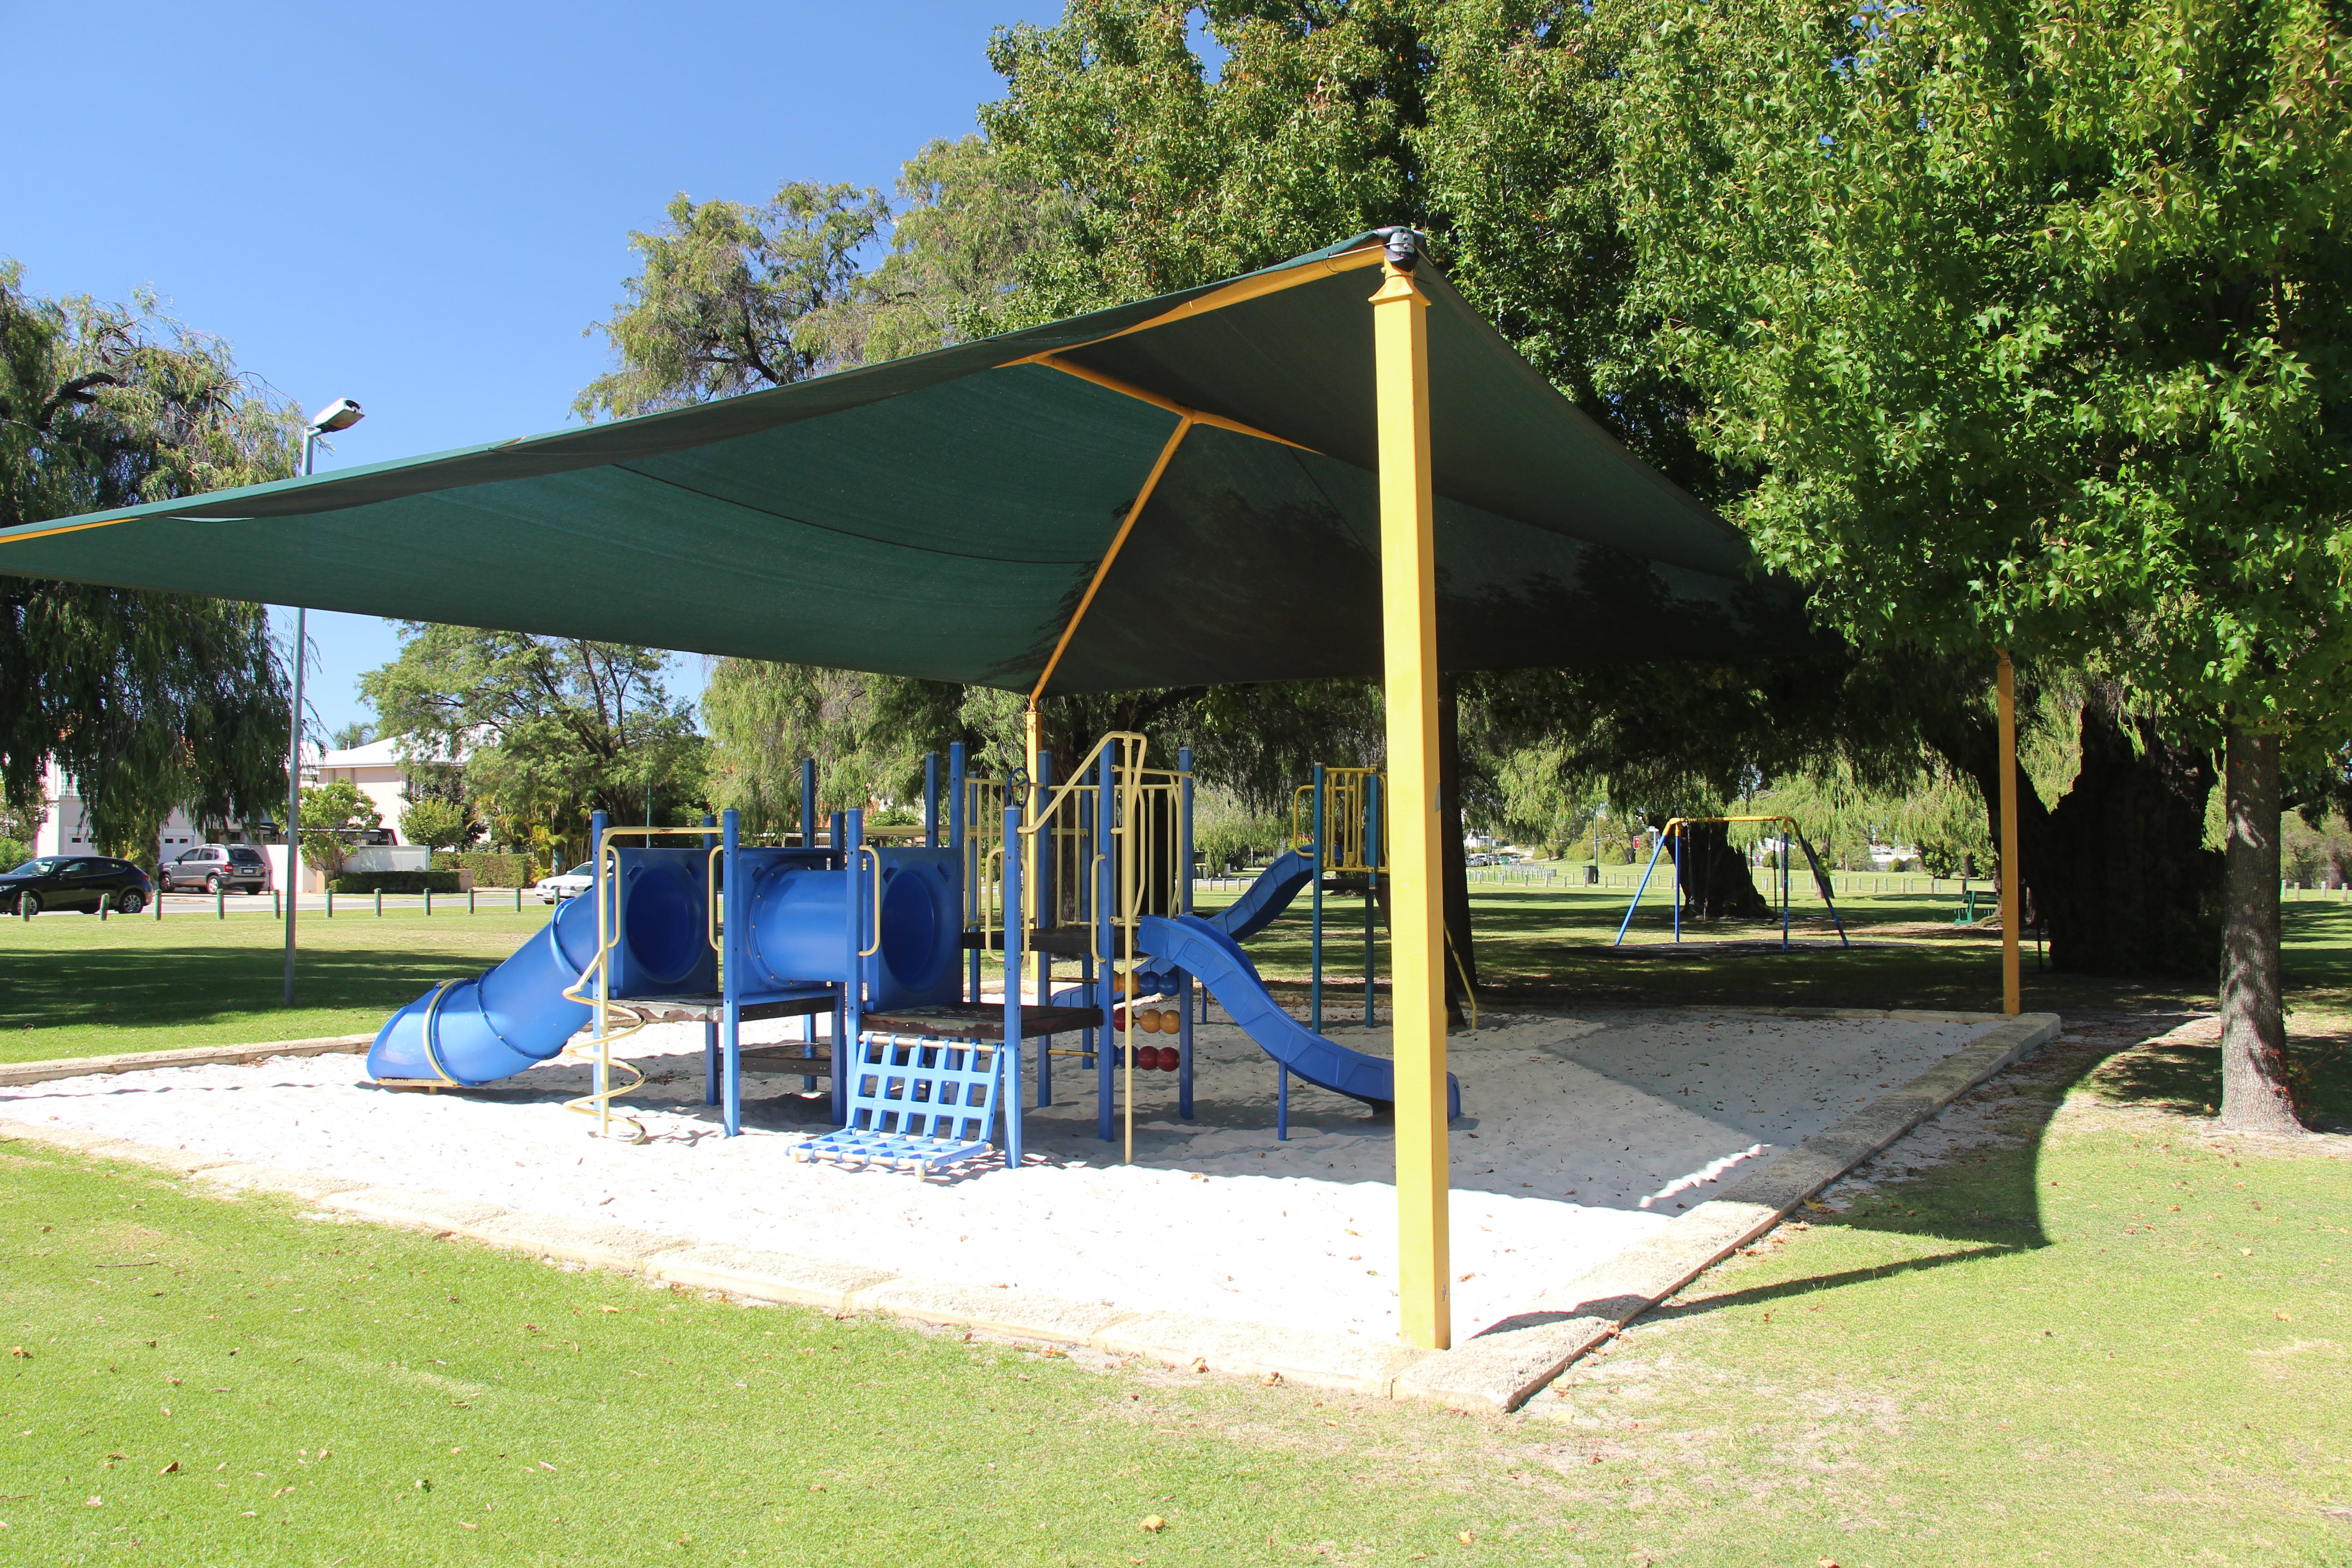 Olives Reserve playground